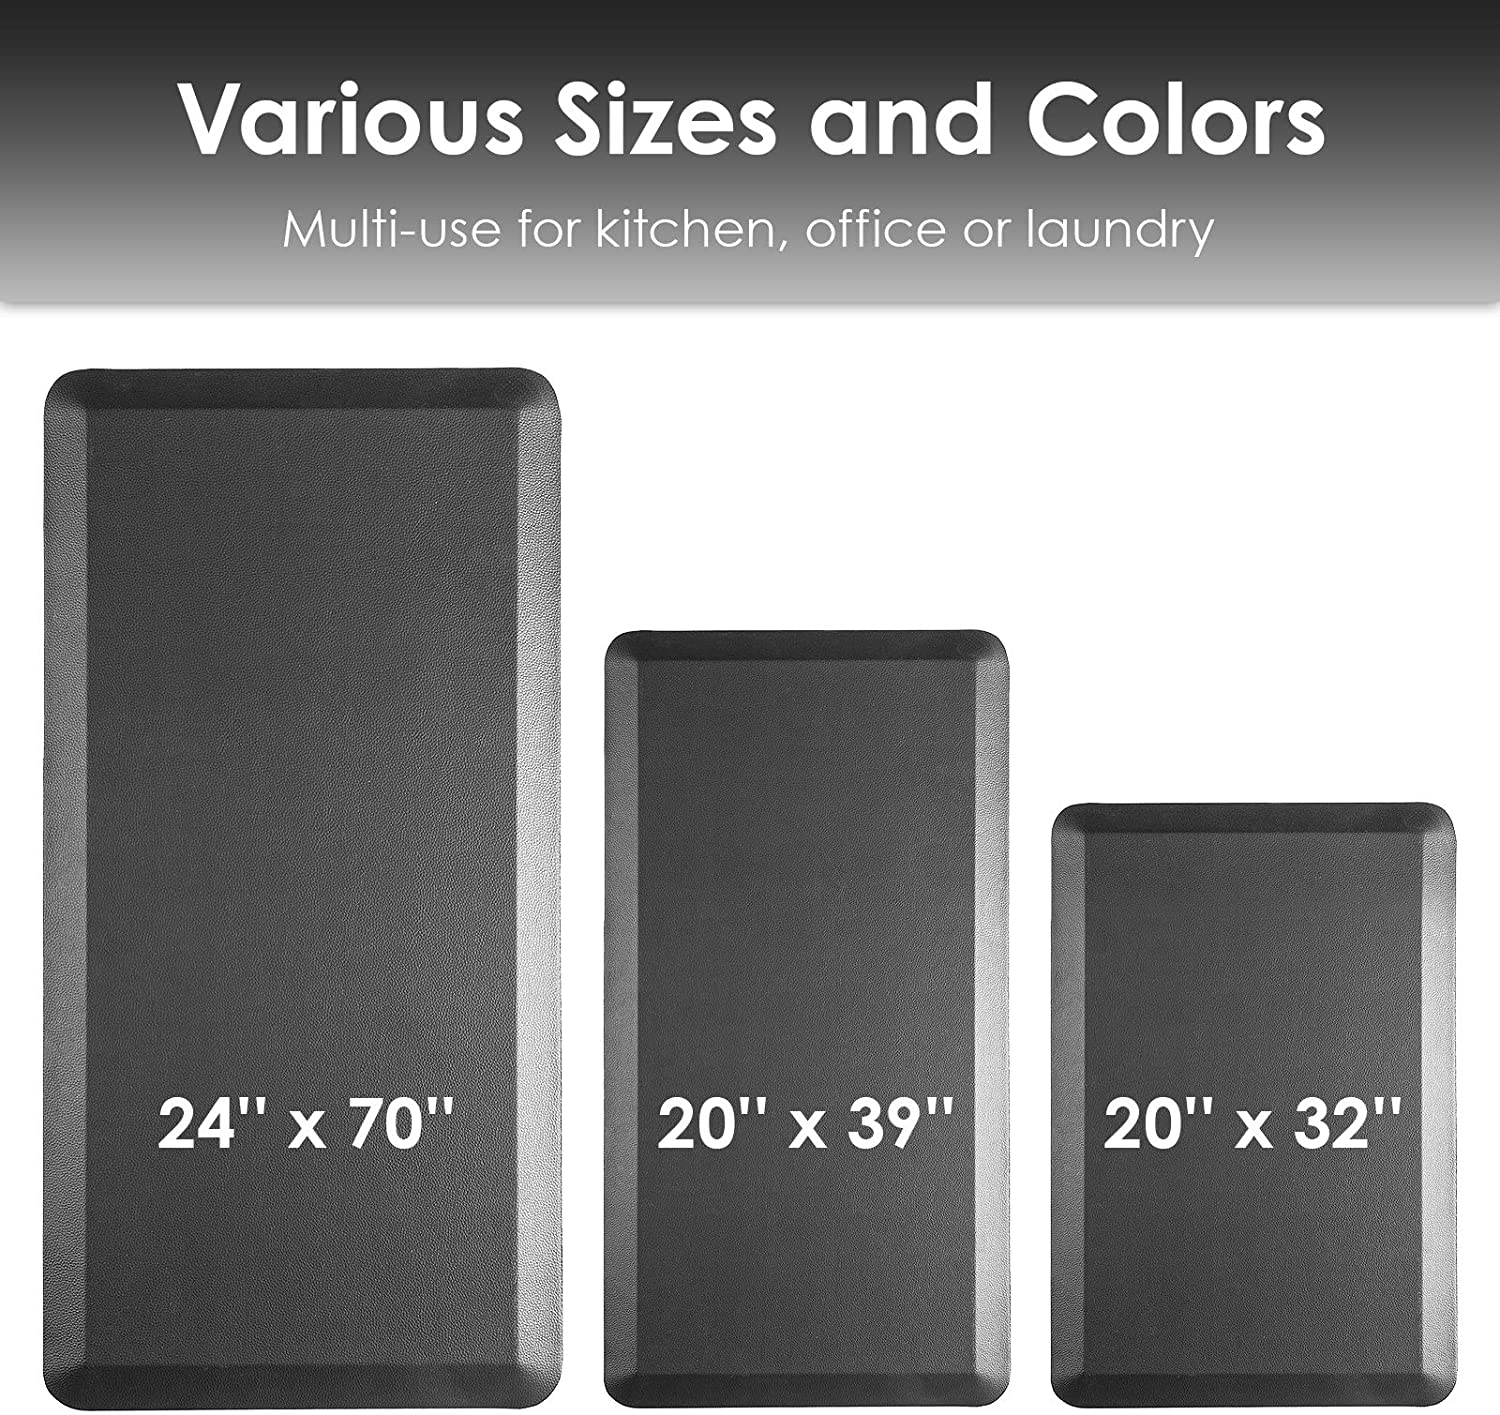 Office 20 x 32 Non Slip and Ergonomic Cushioned Kitchen Mat Black 3//4 Inch Thick Standing Desk Mat for Home Rostyle Anti Fatigue Mat for Kitchen Premium Floor Comfort Mat Kitchen Rug